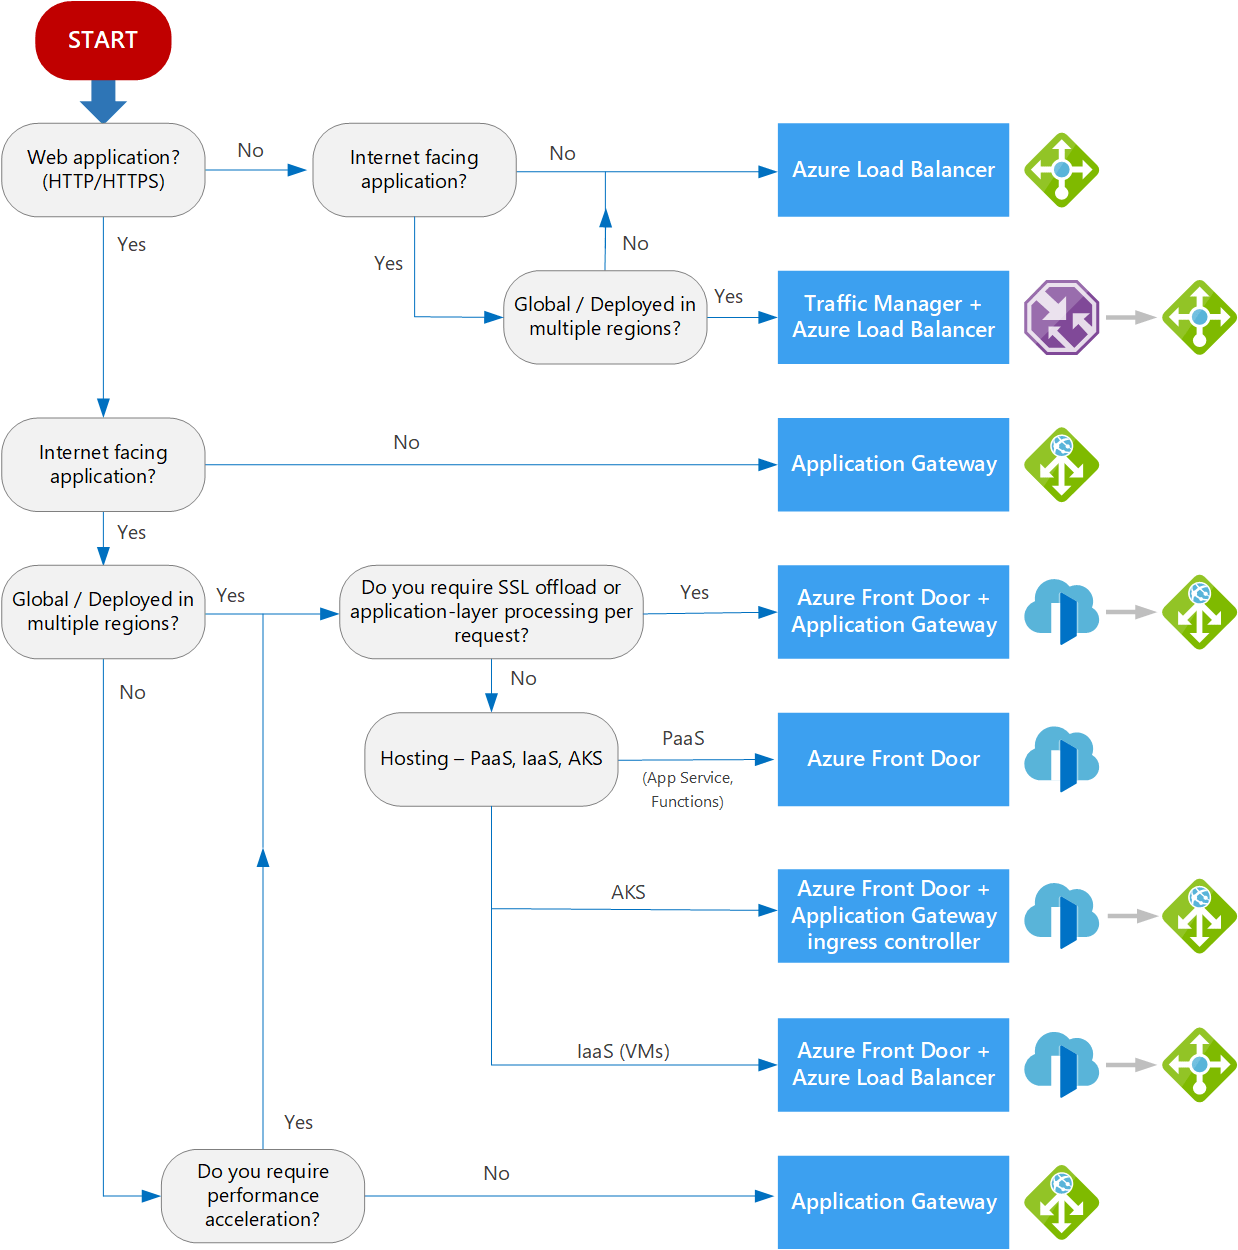 Decision tree for load balancing in Azure